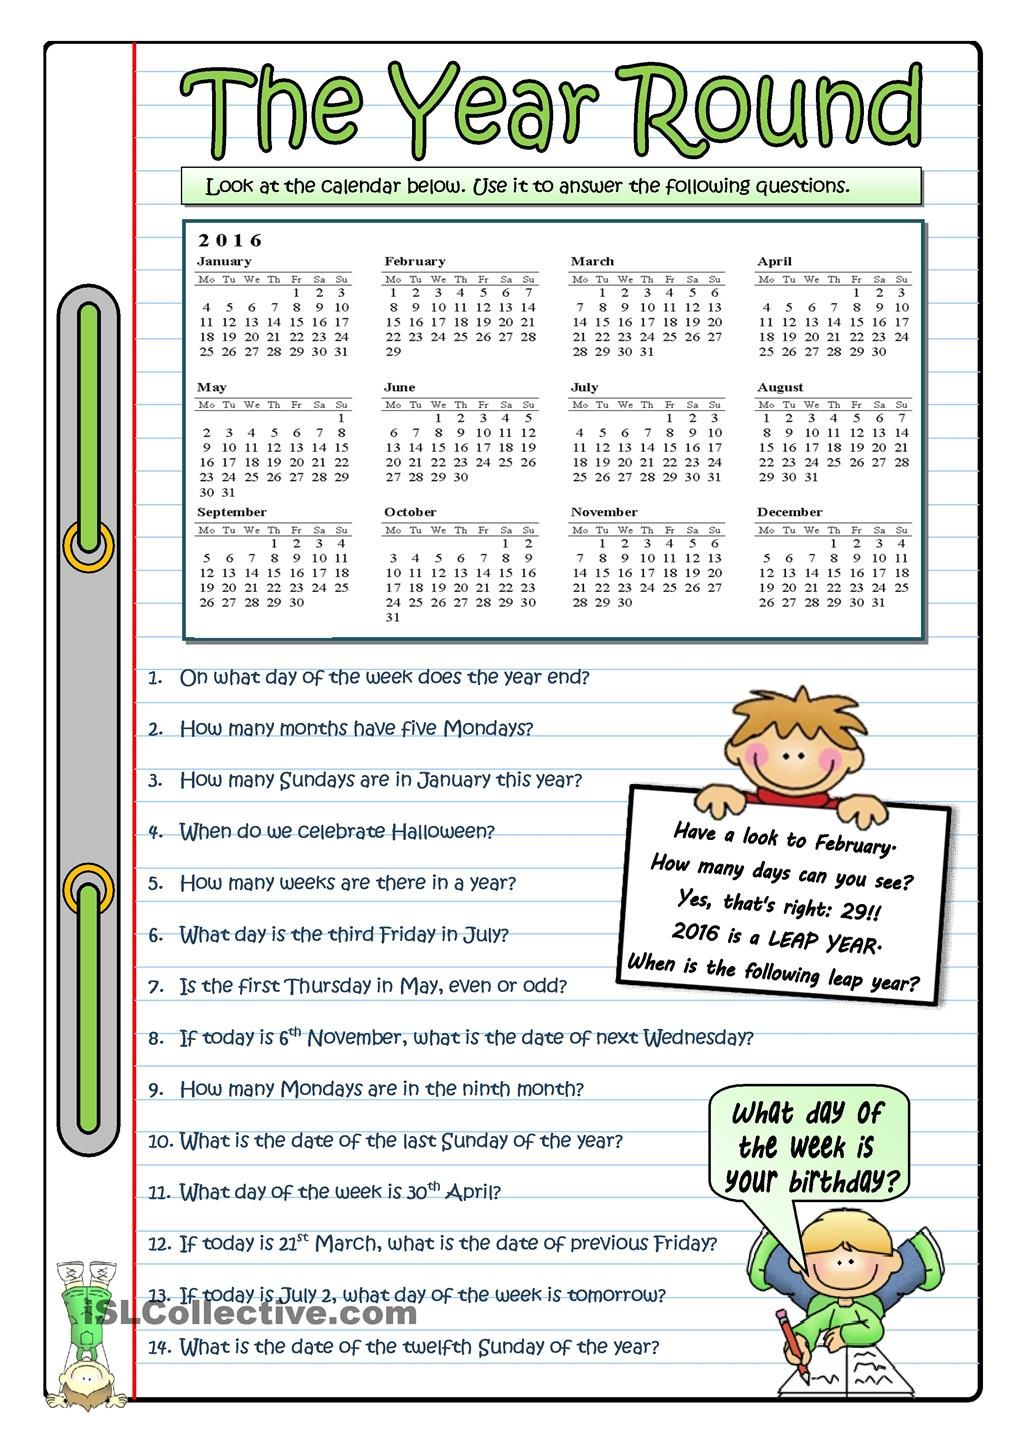 Calendar Activities Esl : The year round esl worksheets of day